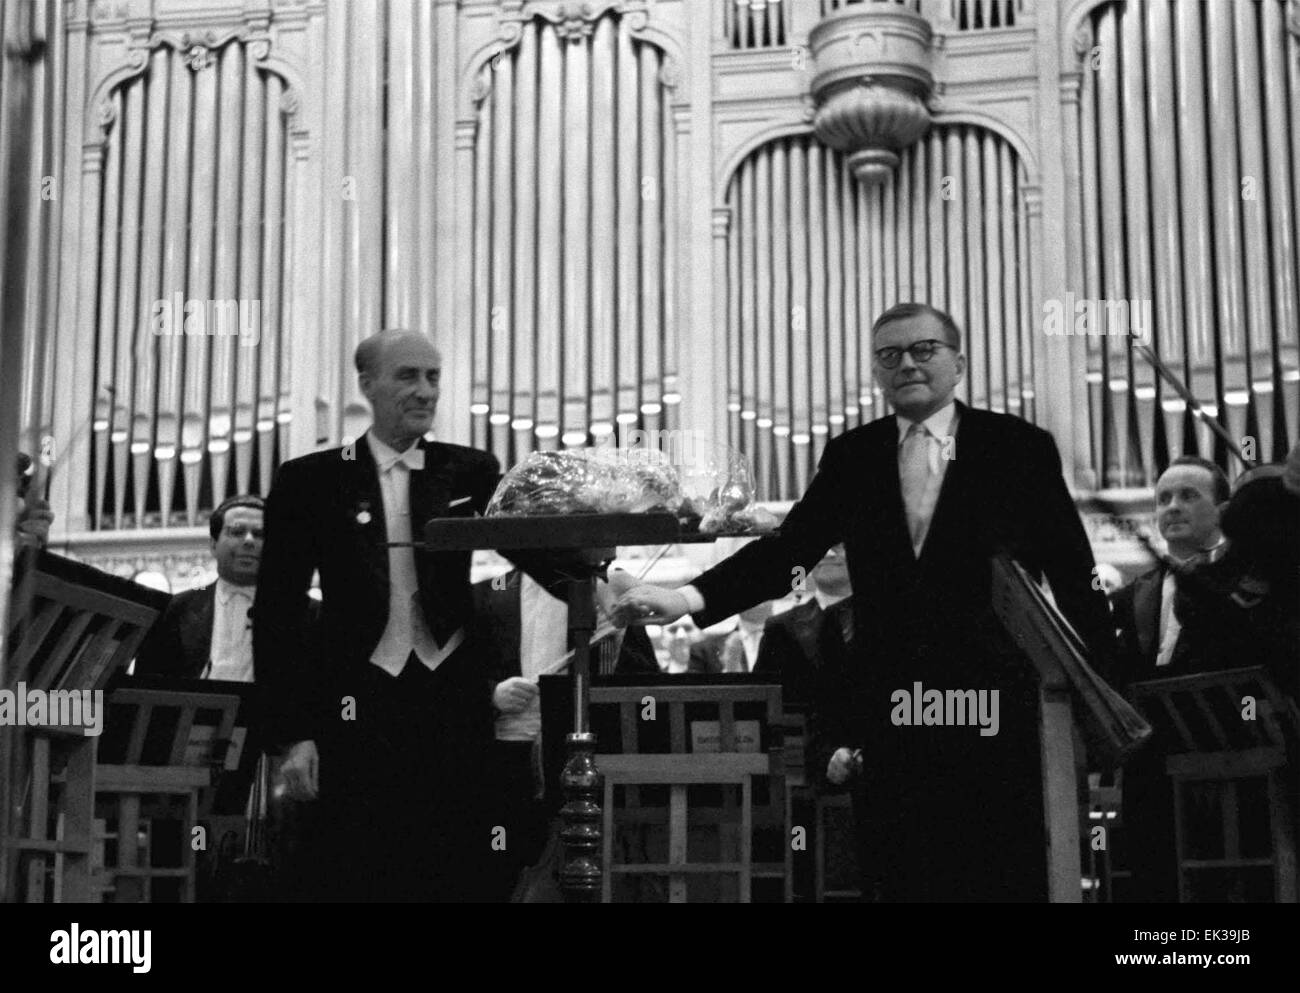 MOSCOW. The Symphony Orchestra of the Leningrad Philharmonic gave a concert at the Grand Hall of the Moscow Conservatory. - Stock Image